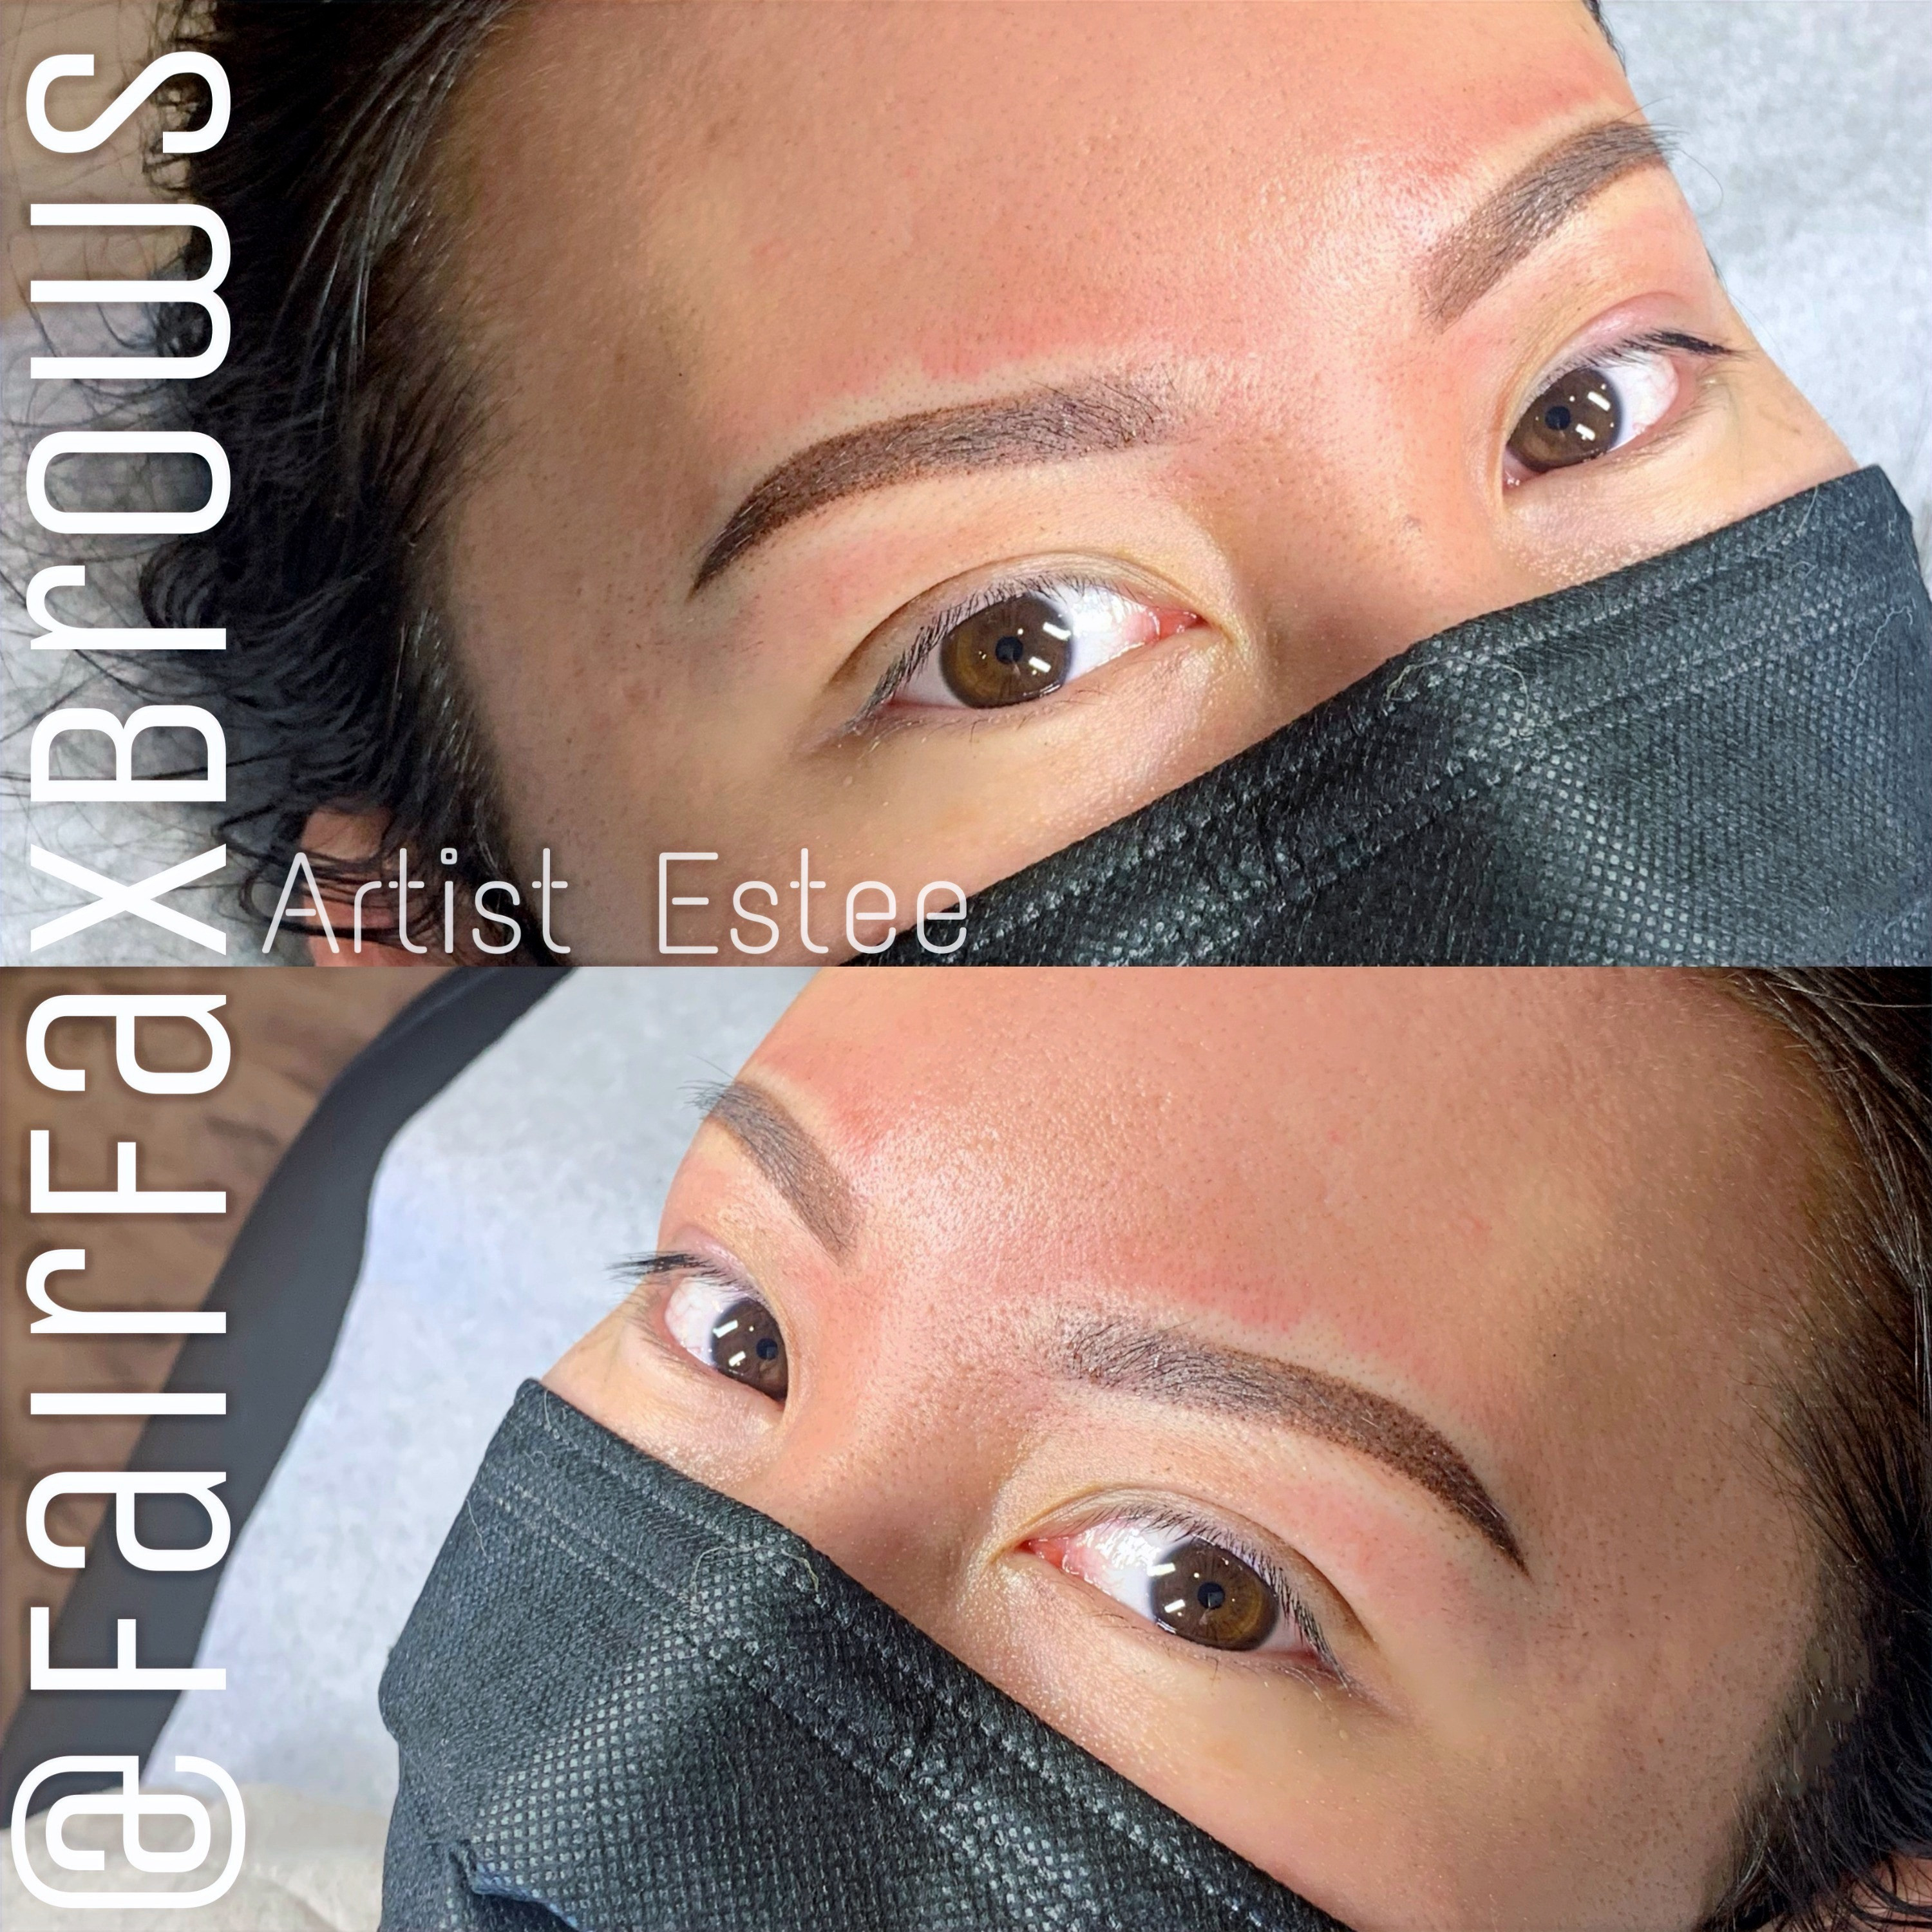 6-12WKS TOUCHUP- ESTEE. EXISTING CLIENT